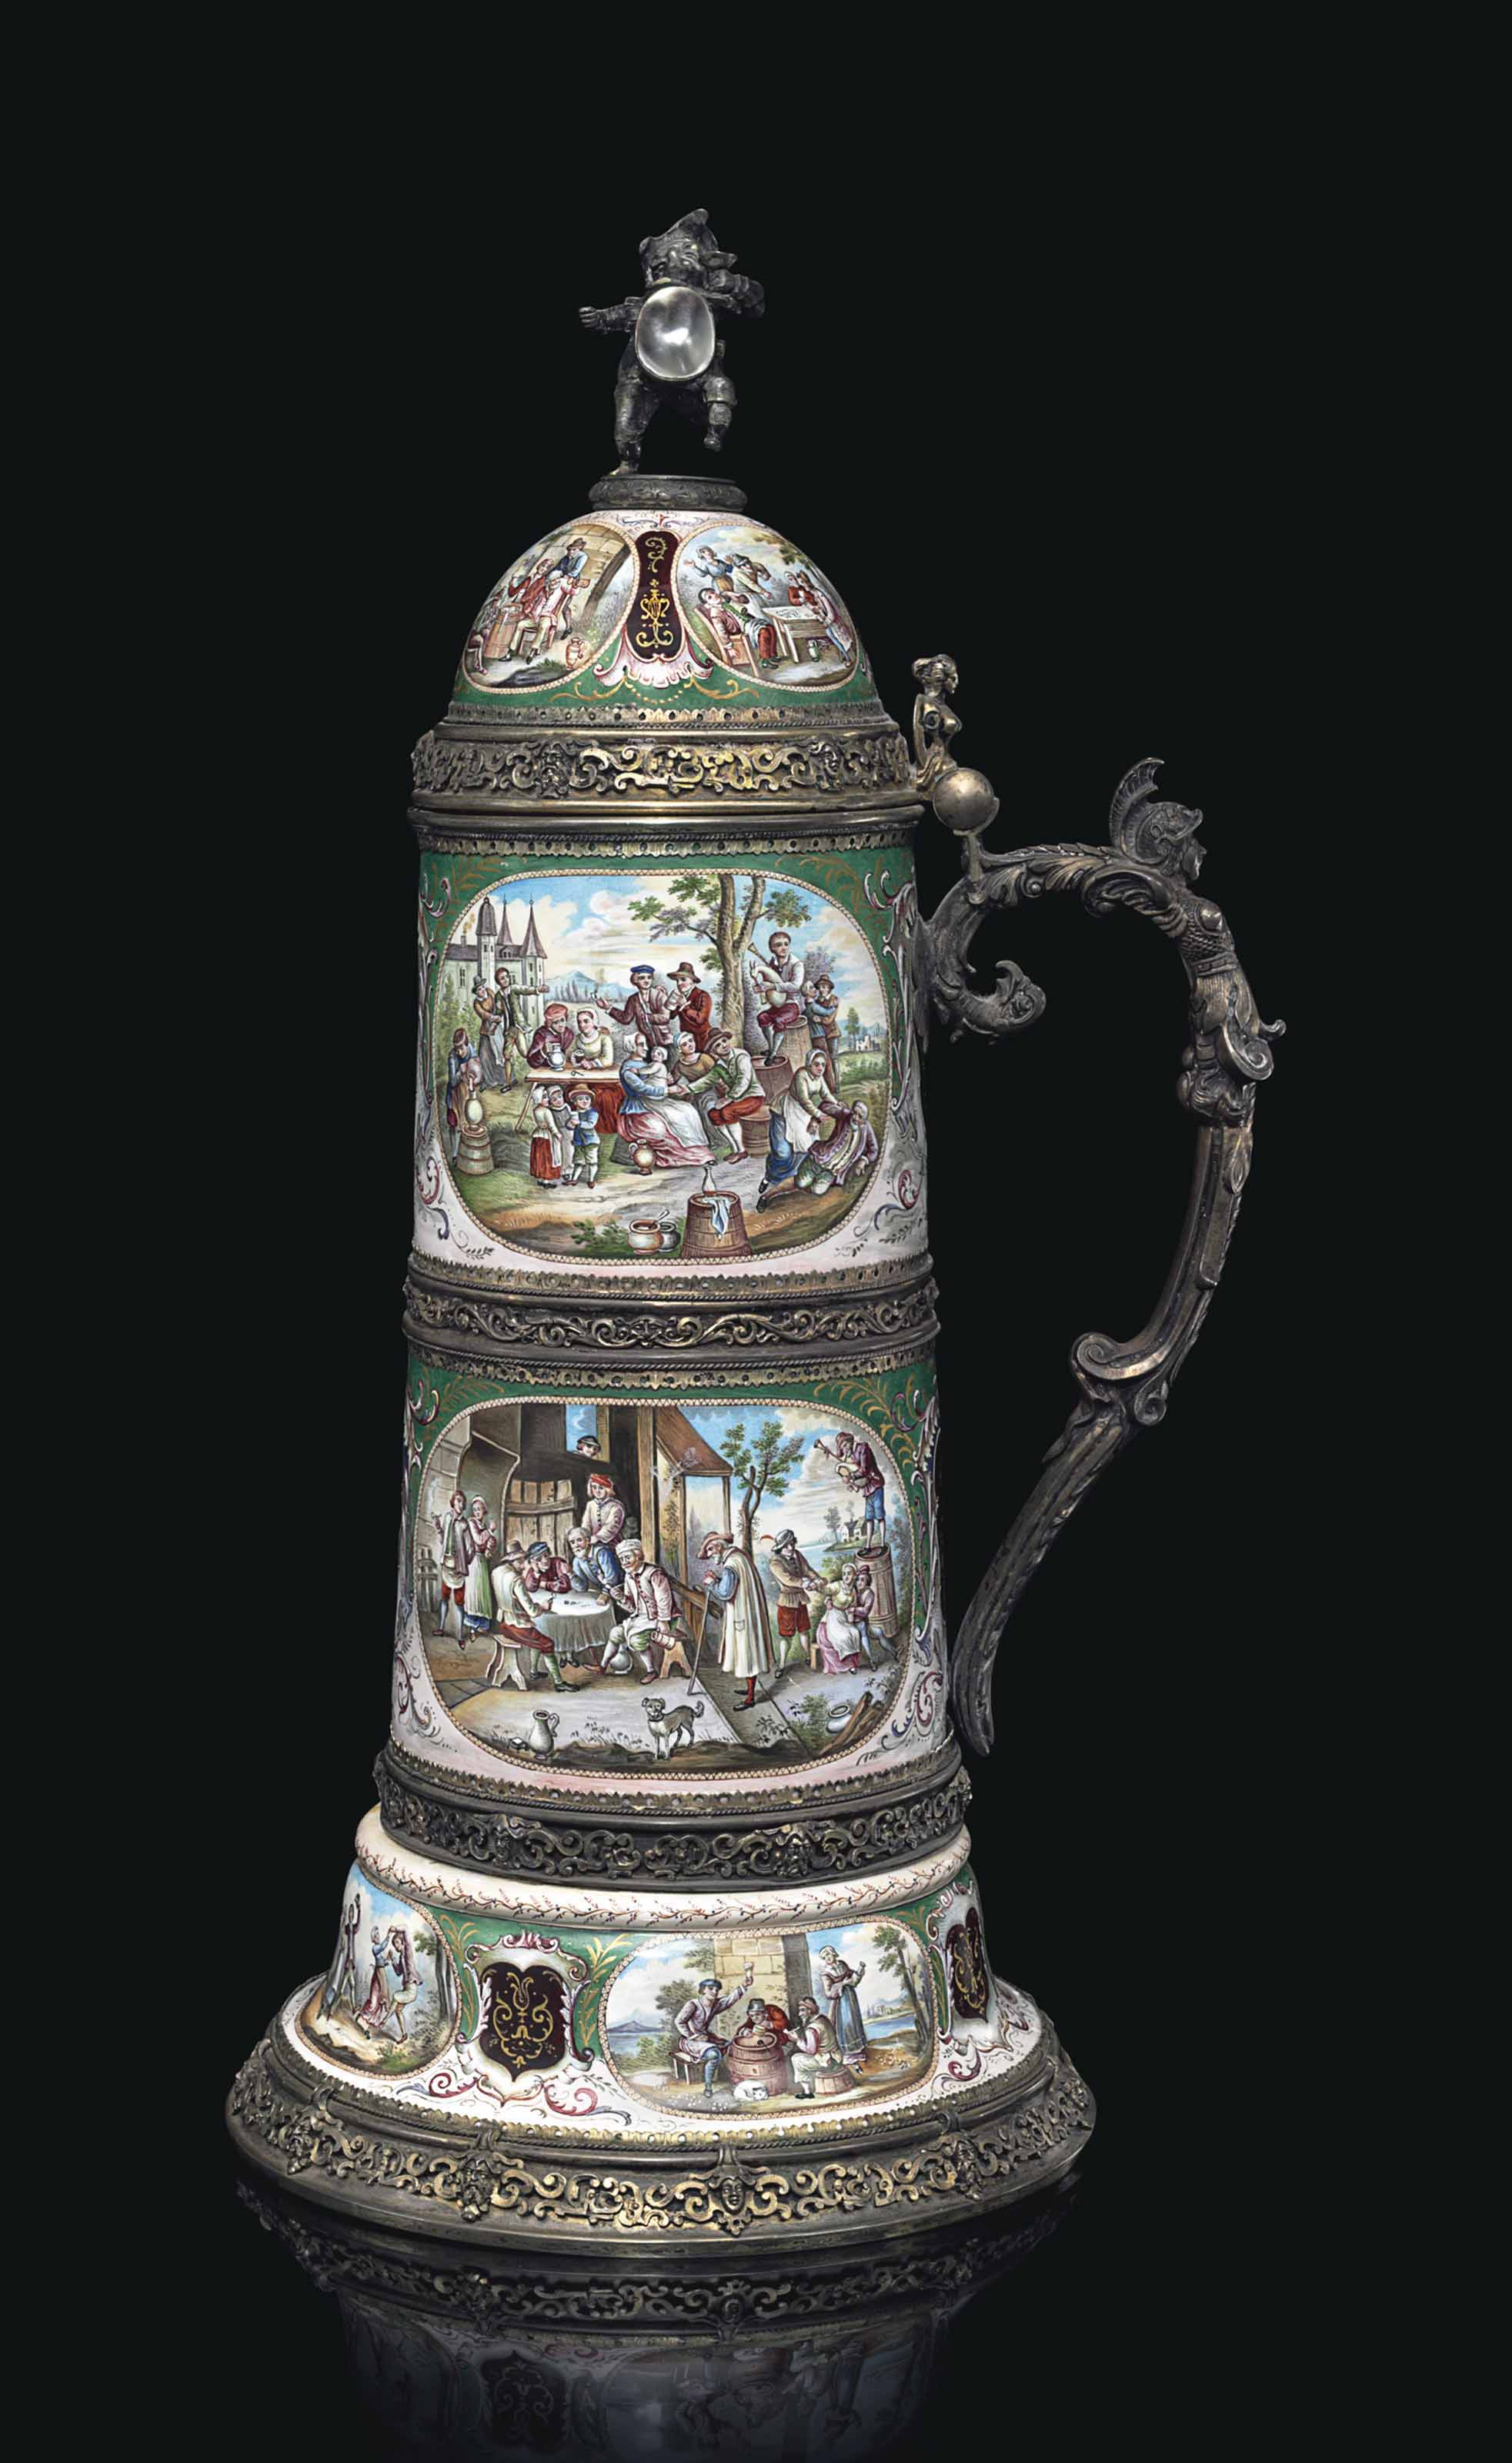 A VIENNESE SILVER, SILVER-GILT, ENAMEL AND MOTHER-OF-PEARL LIDDED TANKARD